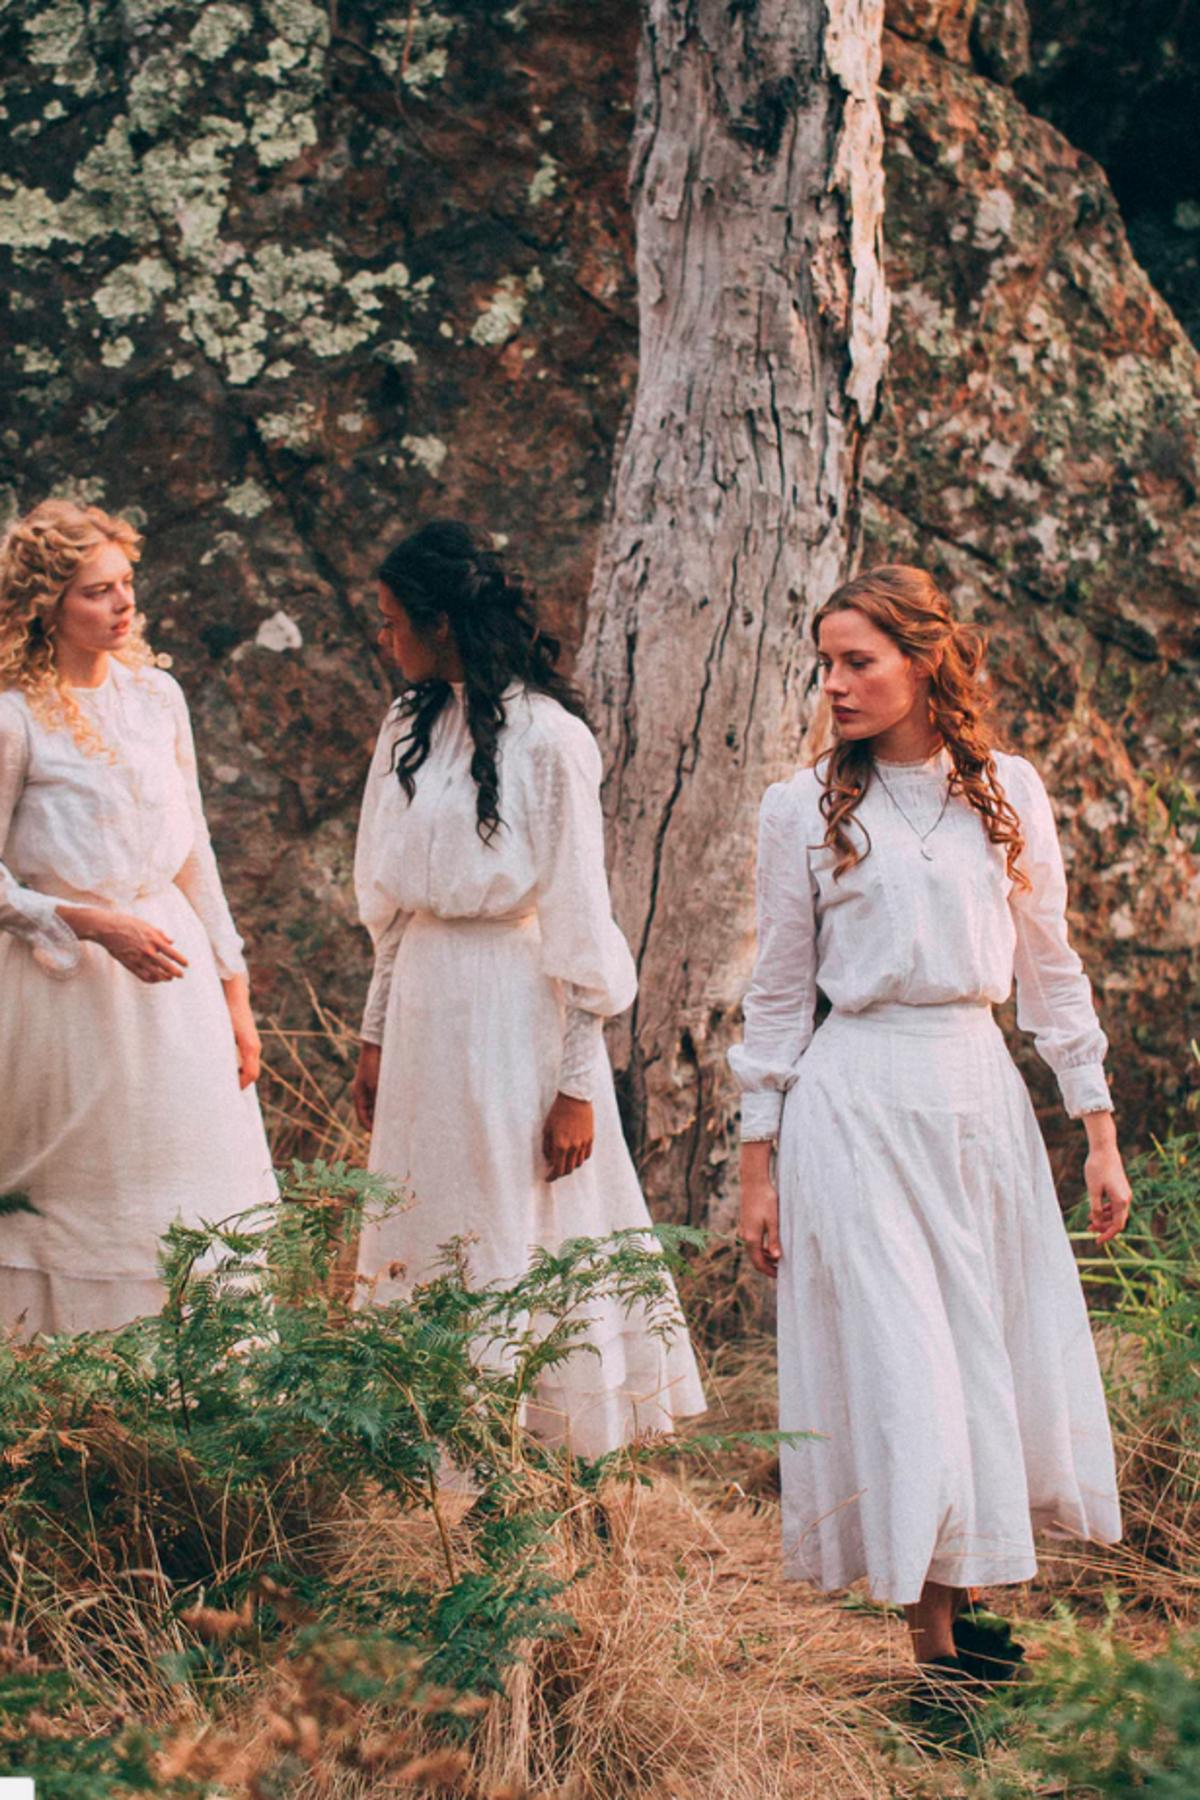 Why the lost daughters of Picnic at Hanging Rock still haunt us